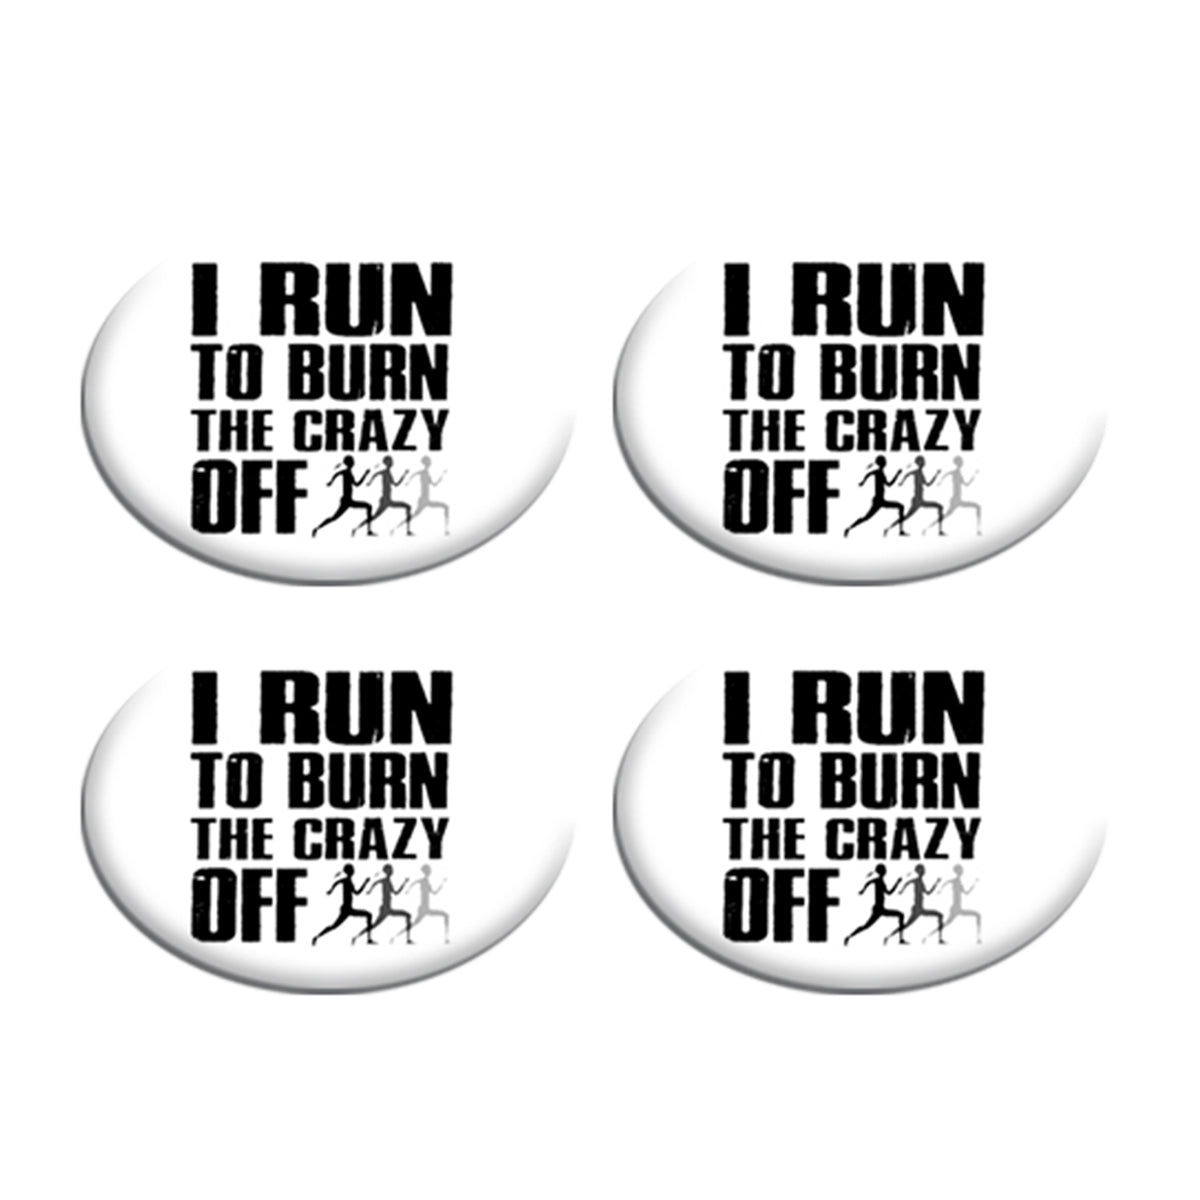 I Run To Burn the Crazy off